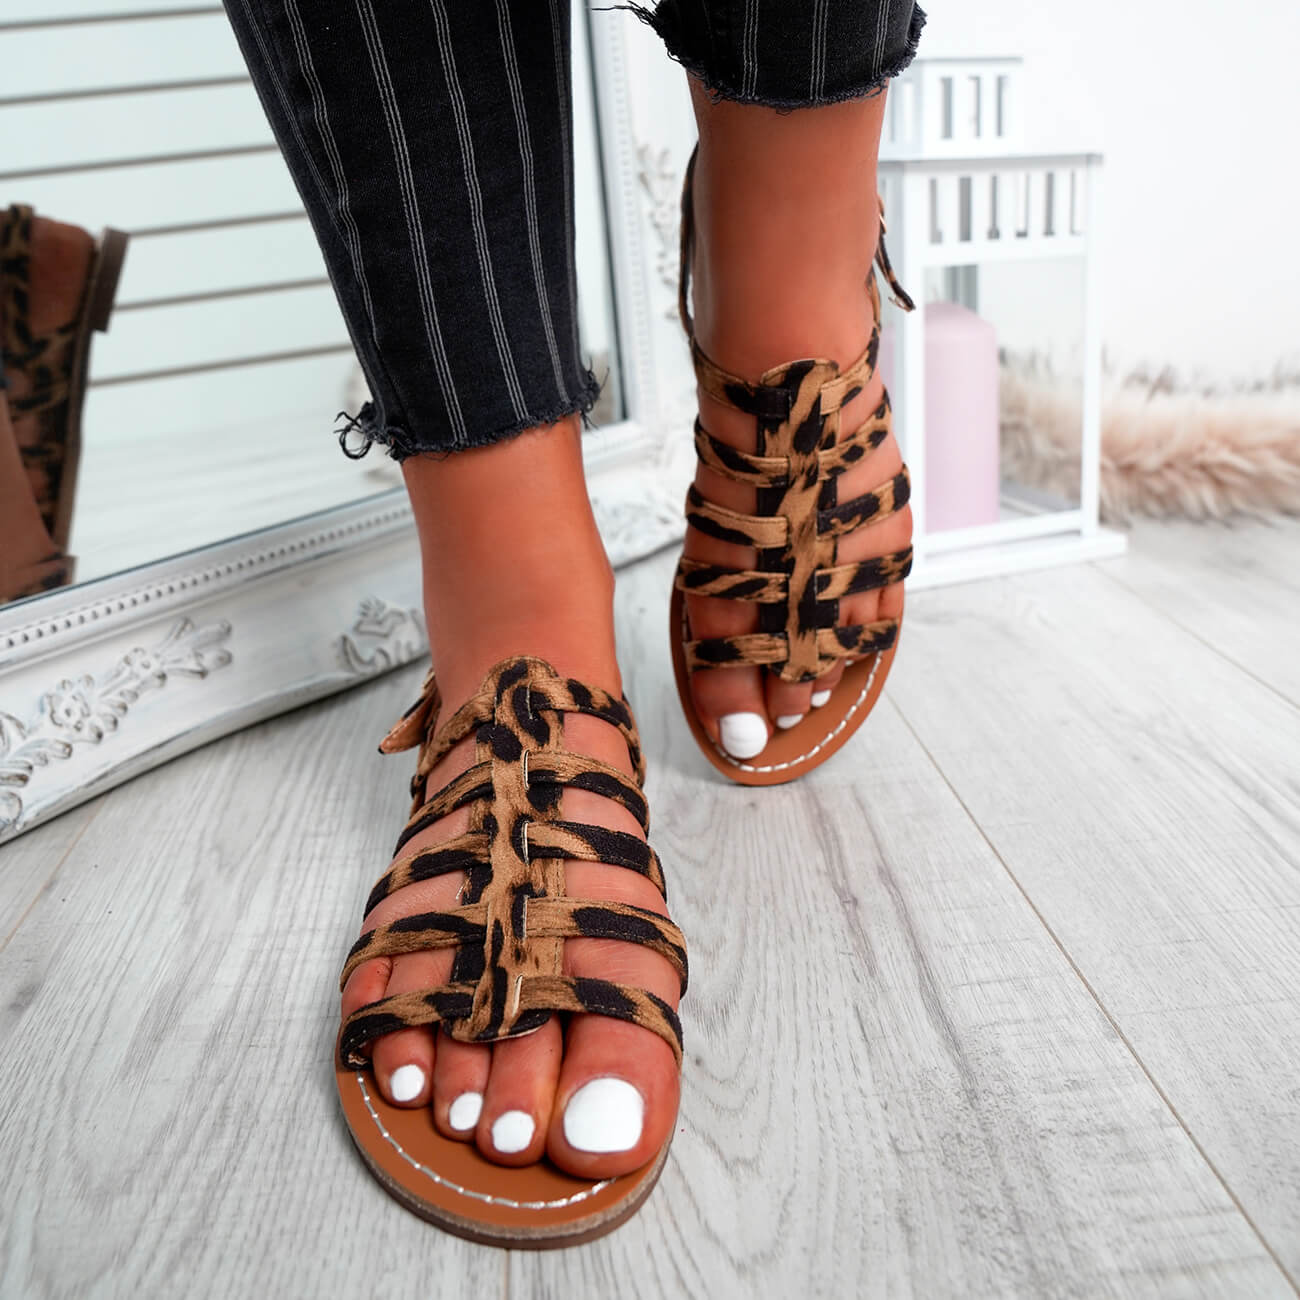 WOMENS-LADIES-BUCKLE-STRAP-FLAT-SUMMER-SANDALS-CASUAL-HOLIDAY-COMFY-SHOES-SIZE thumbnail 22